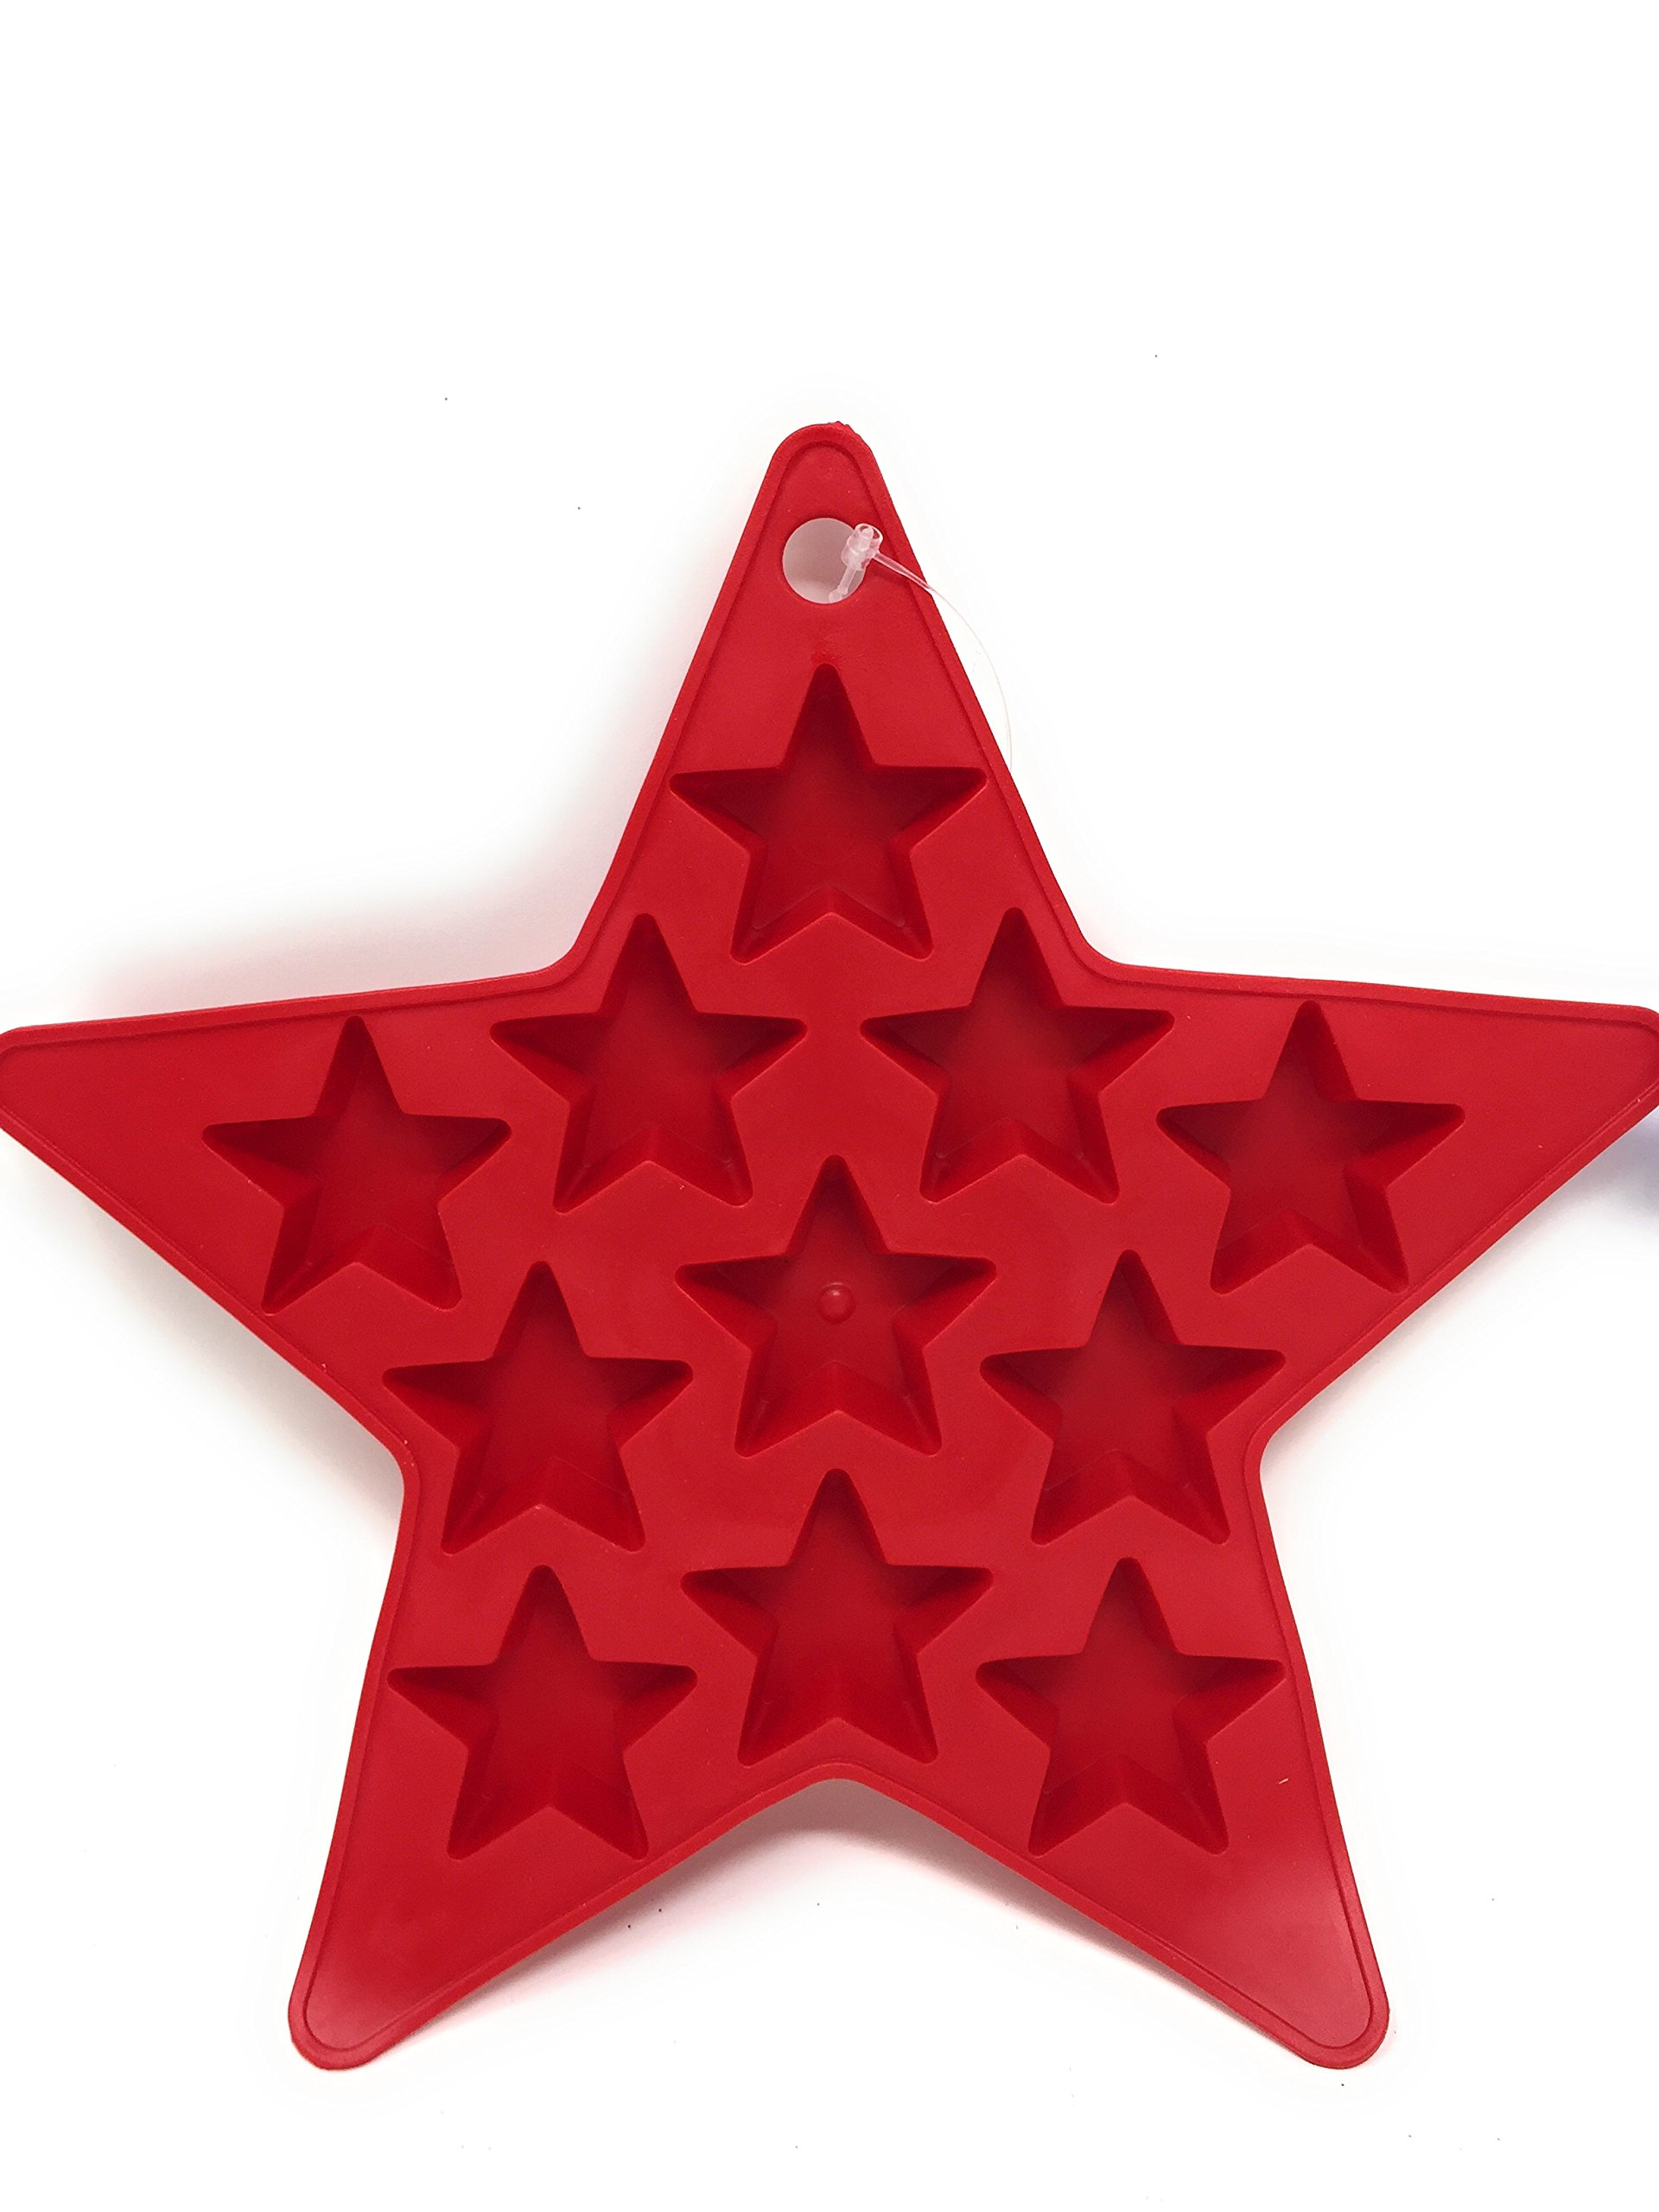 Patriotic Star Shaped Ice Cube Trays in Red and Blue (Set of 2) Makes 22 Star-Shaped Ice Cubes by Hobbeez (Image #2)